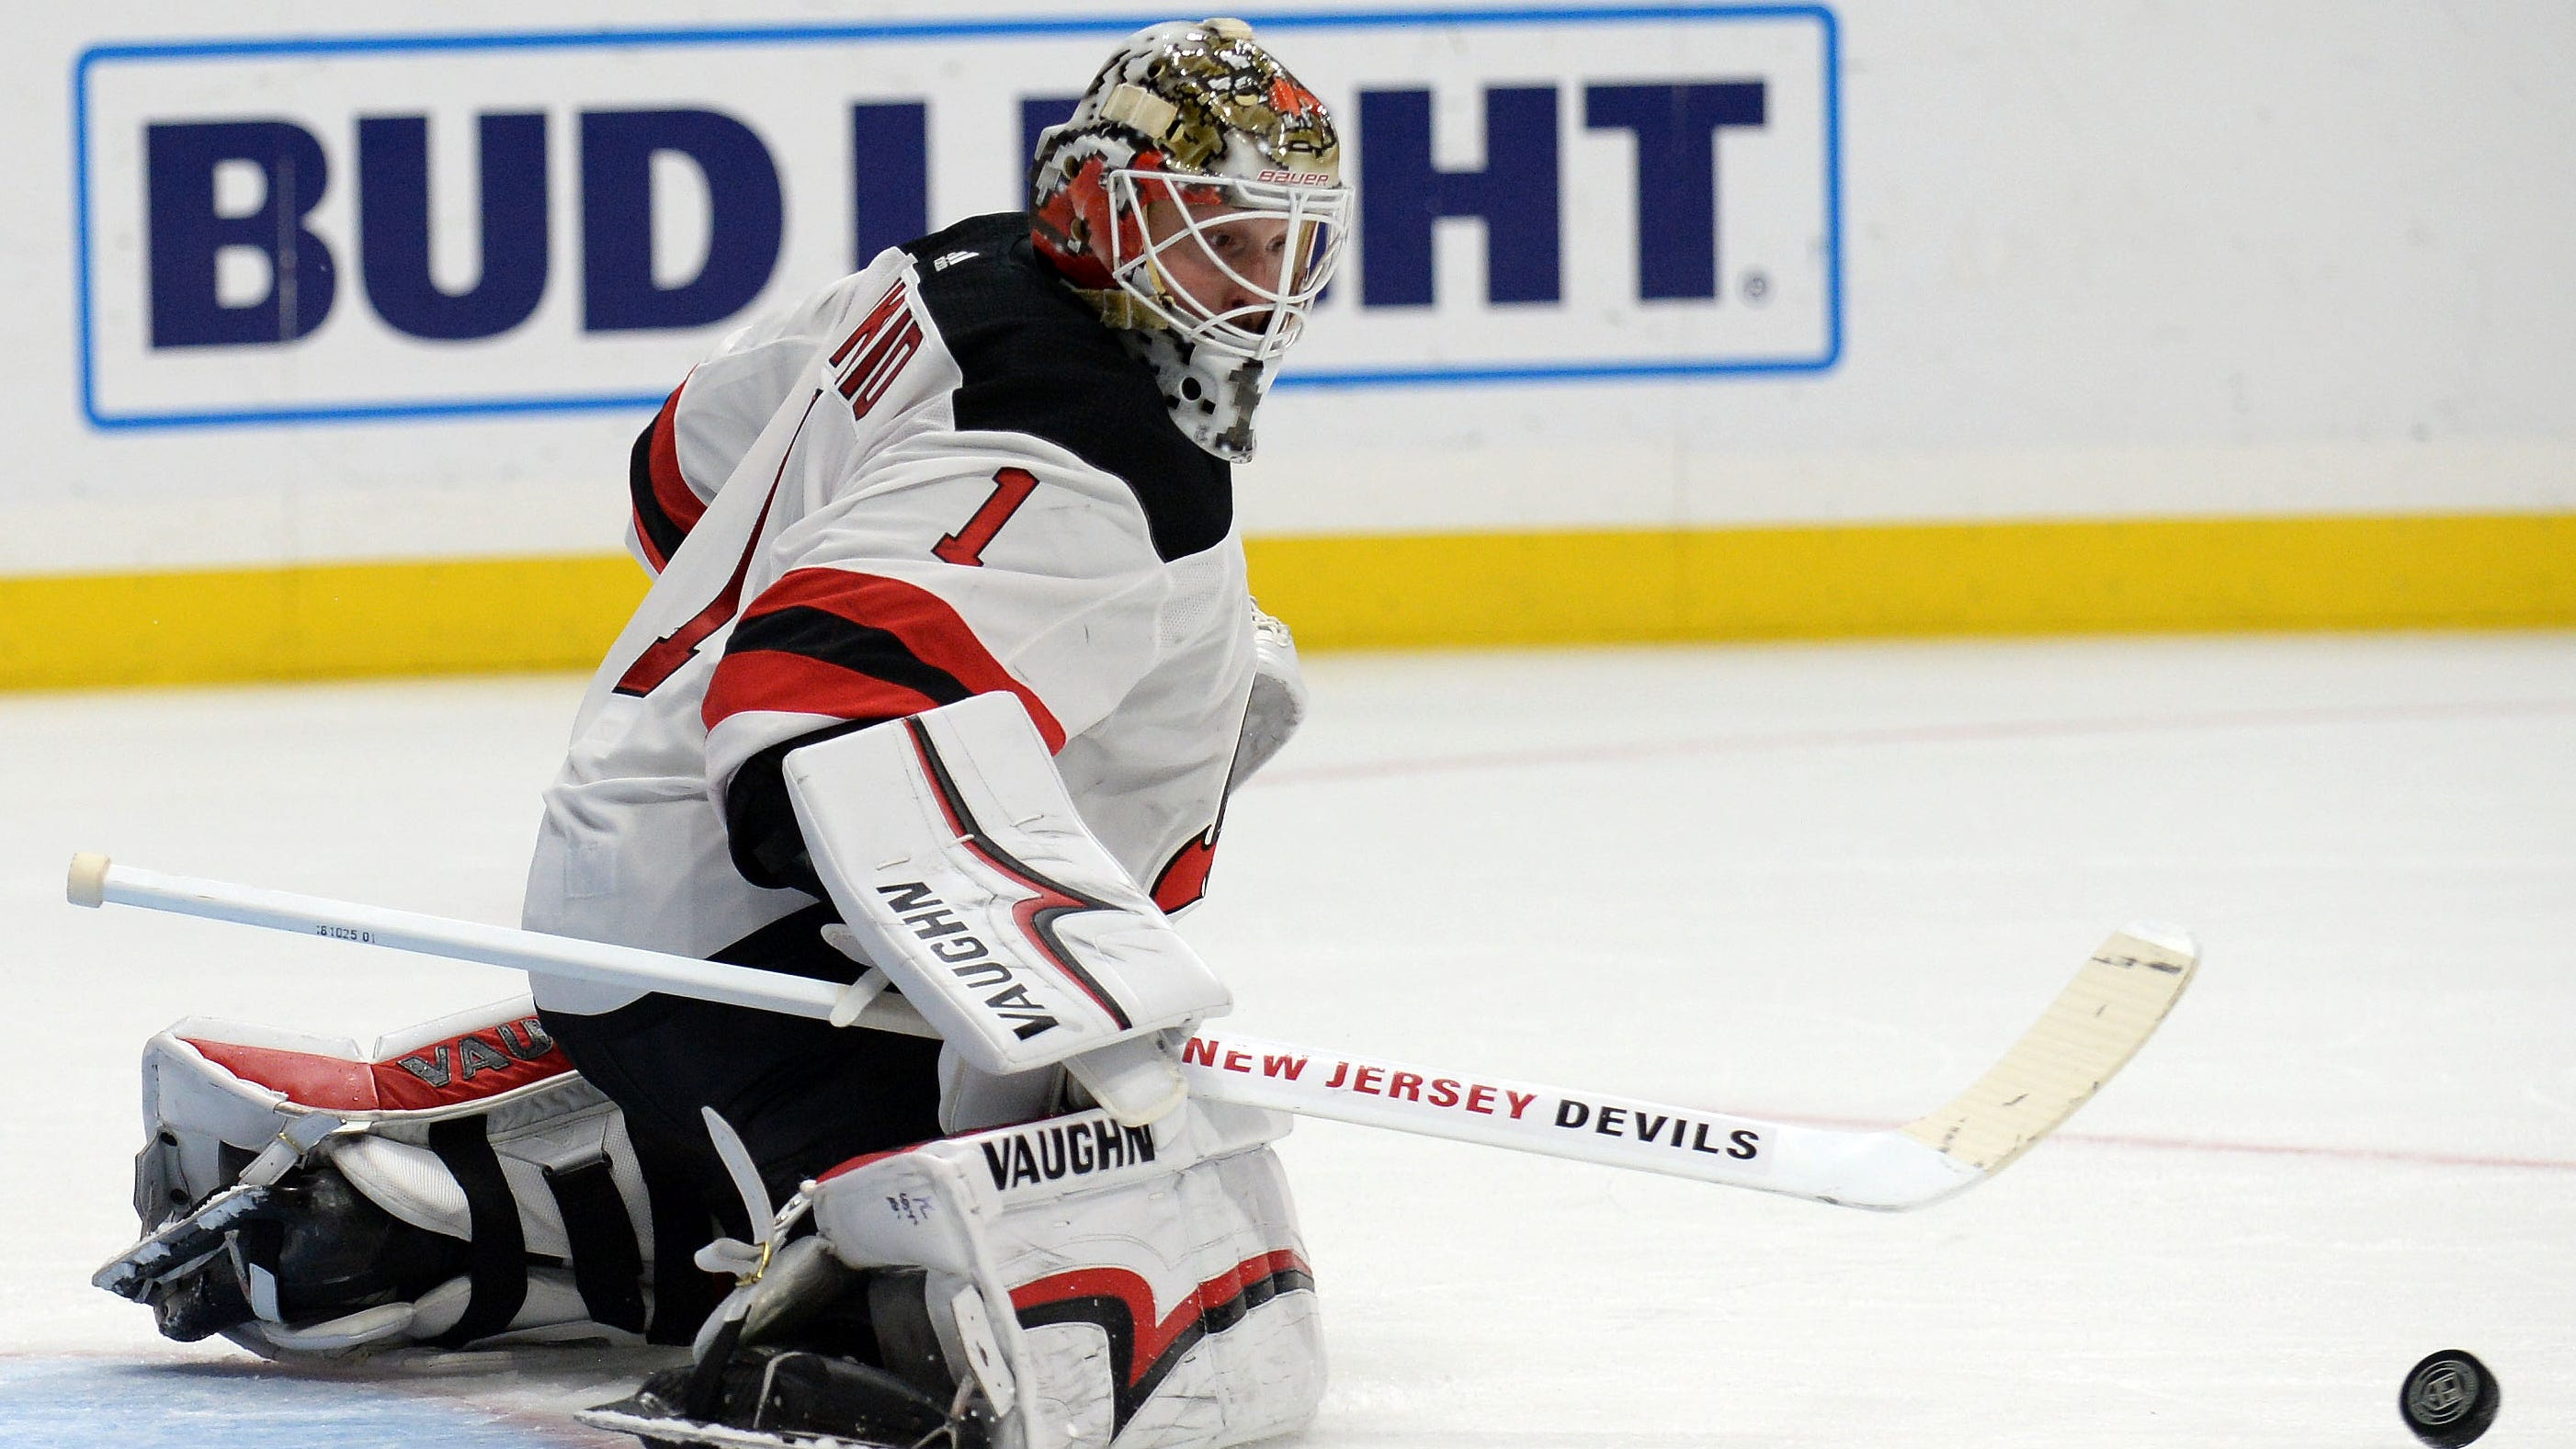 December 6, 2018; Los Angeles, CA, USA; New Jersey Devils goaltender Keith Kinkaid (1) blocks a shot against the Los Angeles Kings during the second period at Staples Center.